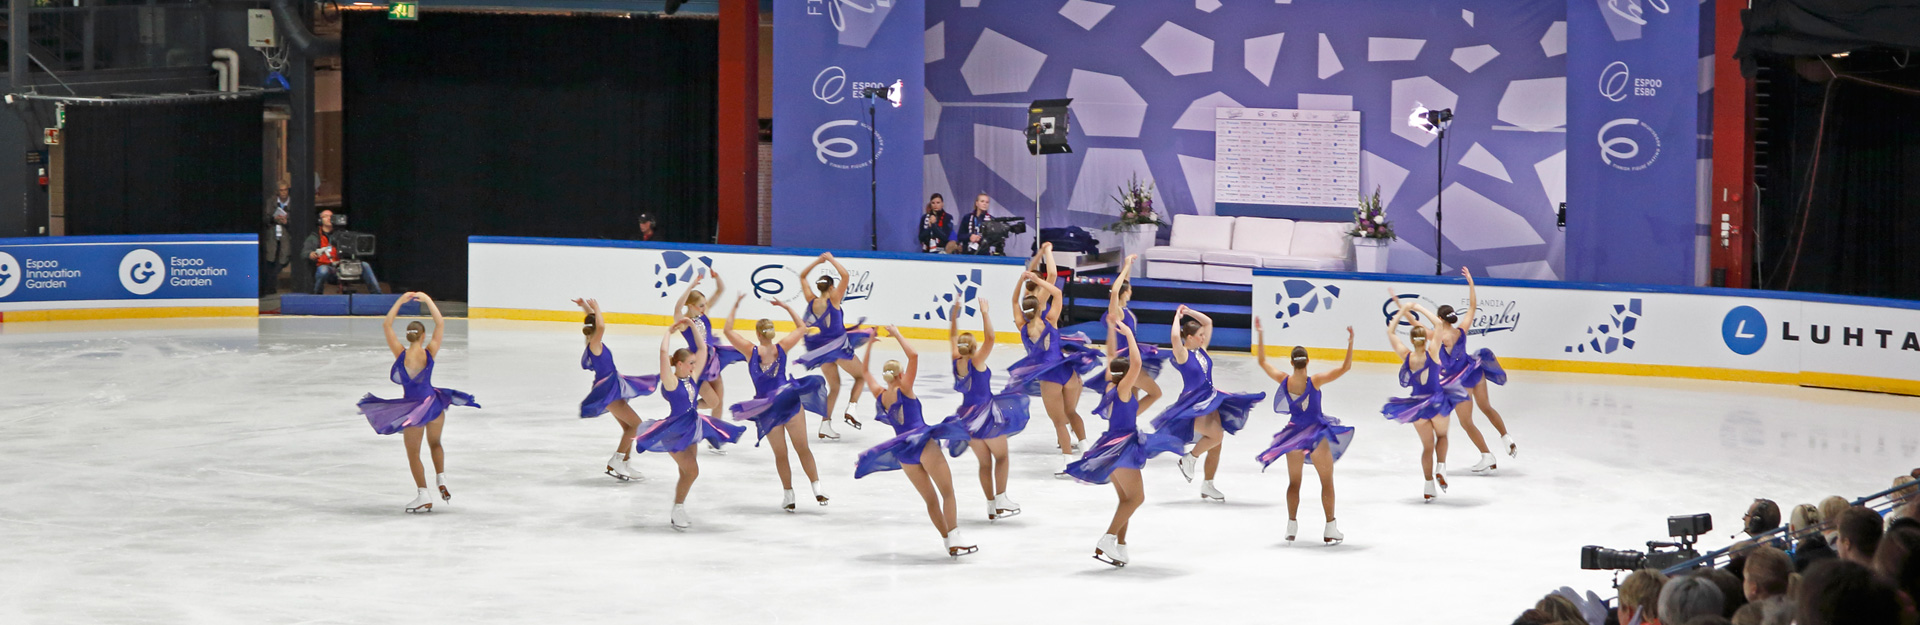 INSPIRING EVENT DEVELOPMENT: FINLANDIA TROPHY ESPOO